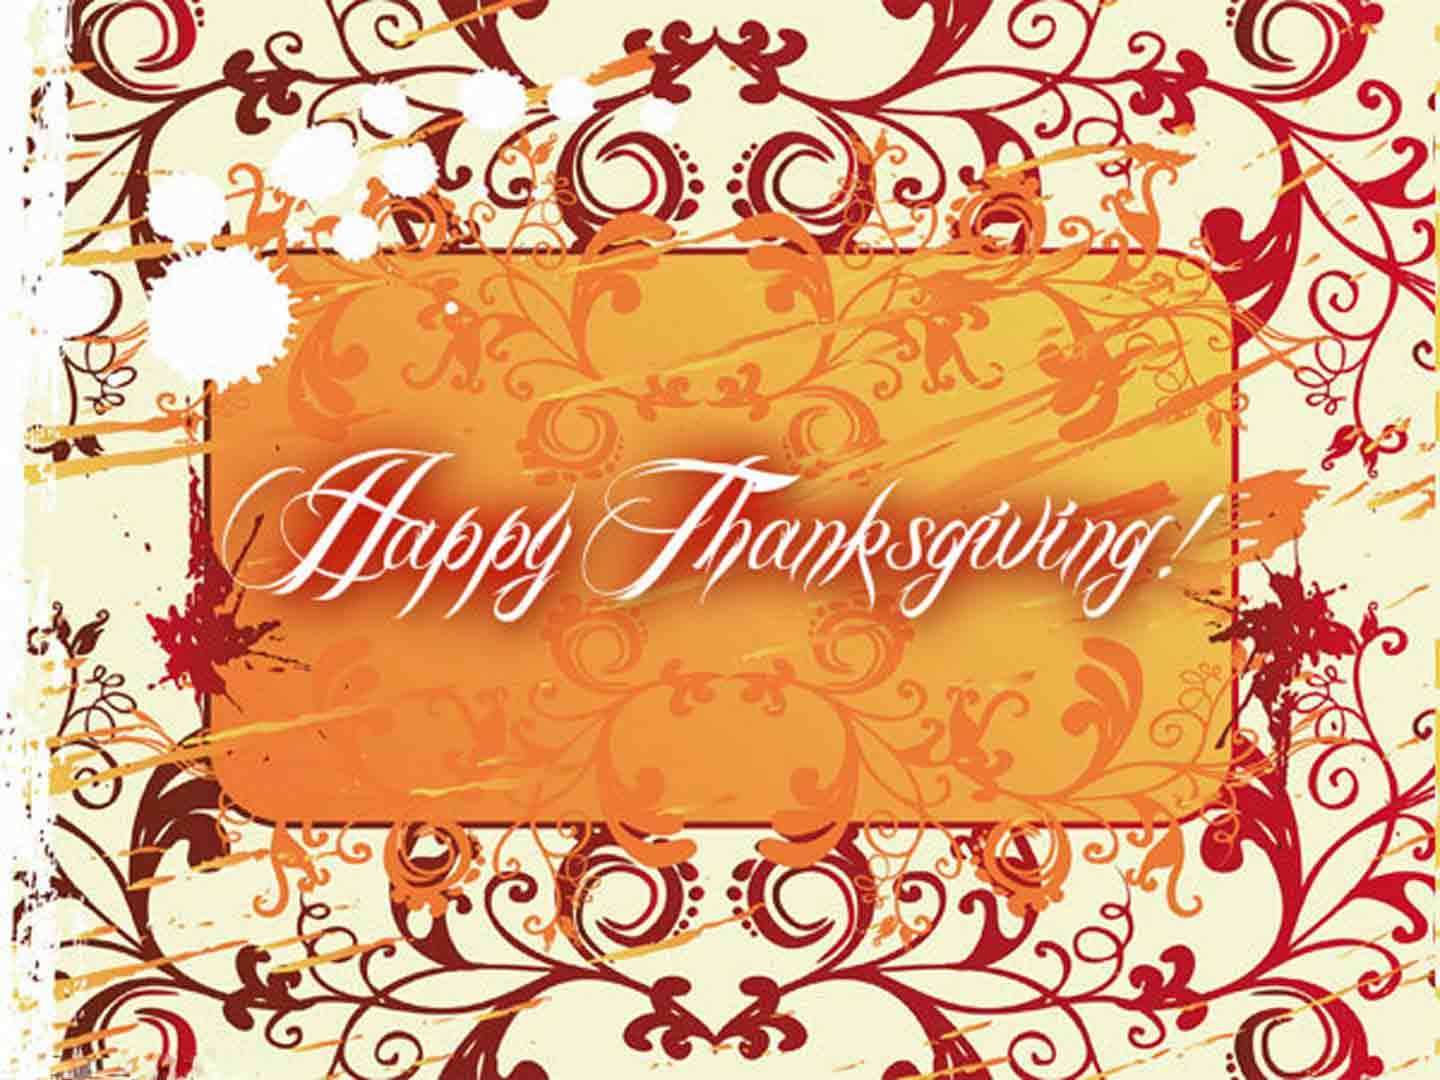 2019] Happy Thanksgiving Image, Pictures, Photos, Wallpapers